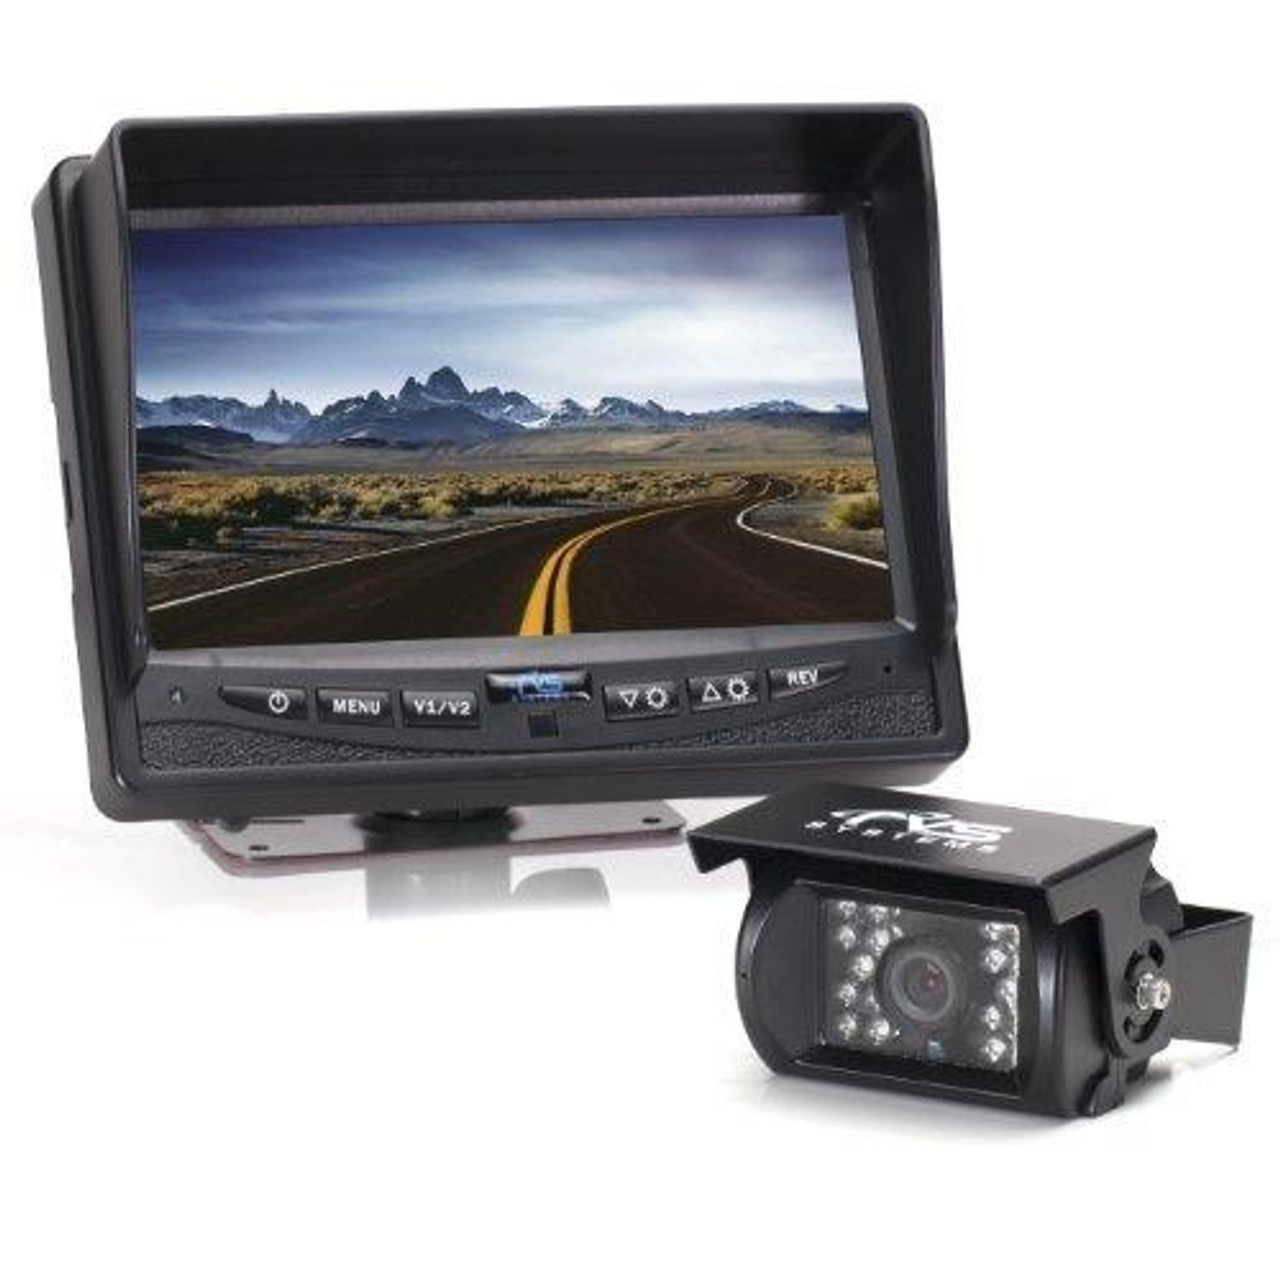 Rear View Safety RVS-770613 Video Camera with 7.0-Inch LCD (Black) - WIRED by Rear View Safety